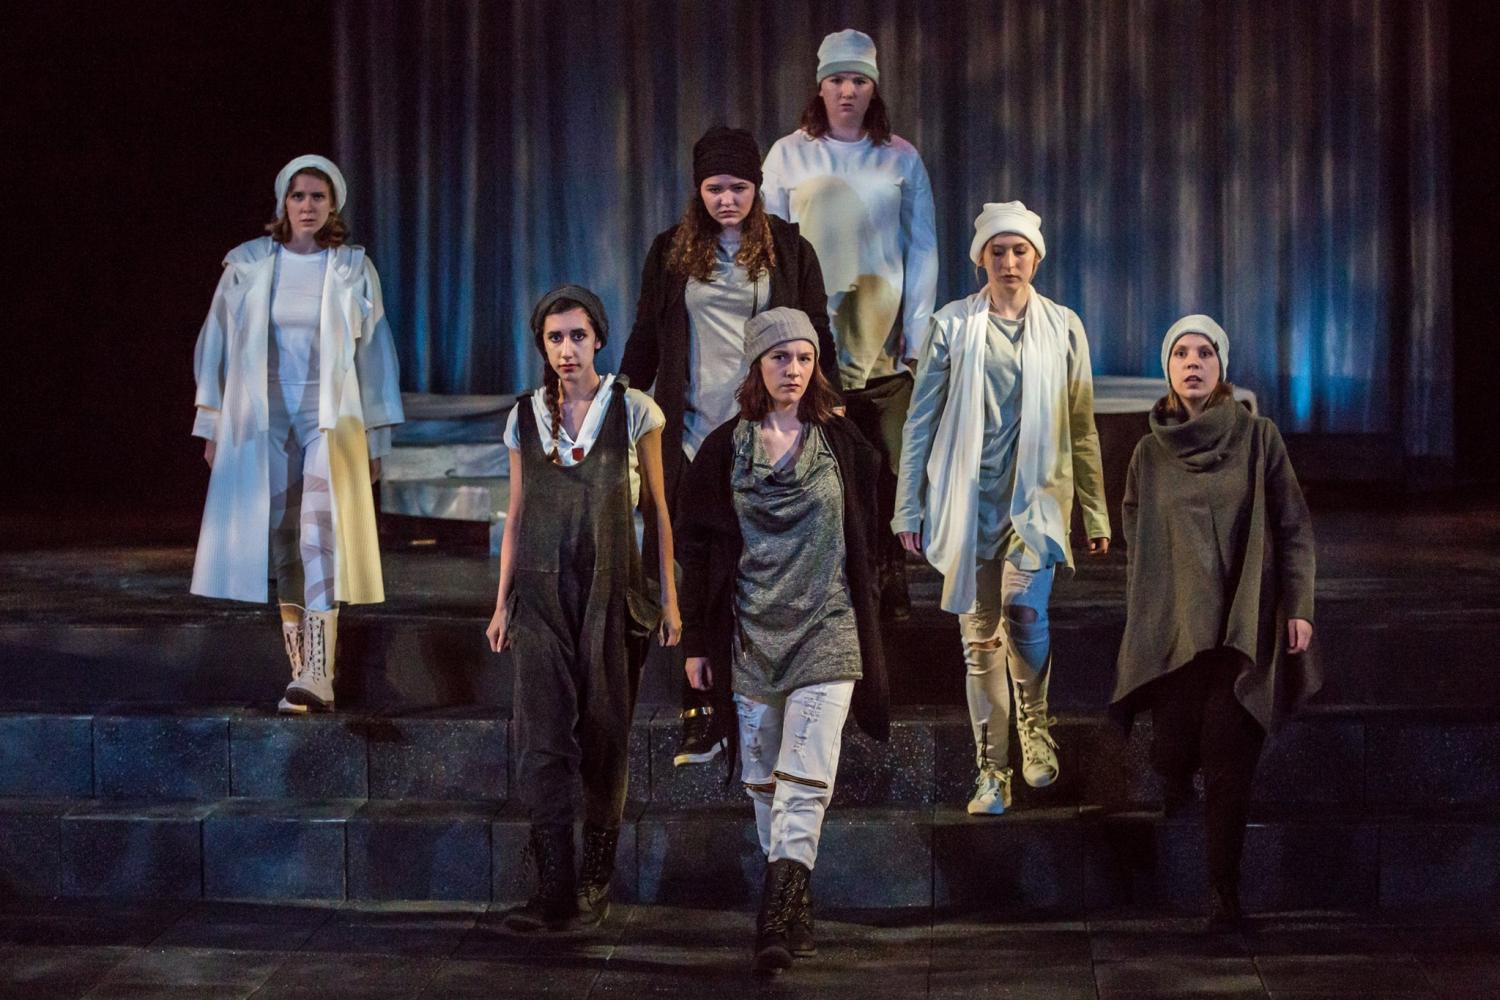 Marilyn Arnold, Parvuna Sulaiman, Tori Thomas, Erica Withrow, Claire Cunningham, Hannah Balint and Miranda Jagels Félix all represent various permutations of the character Antigone.